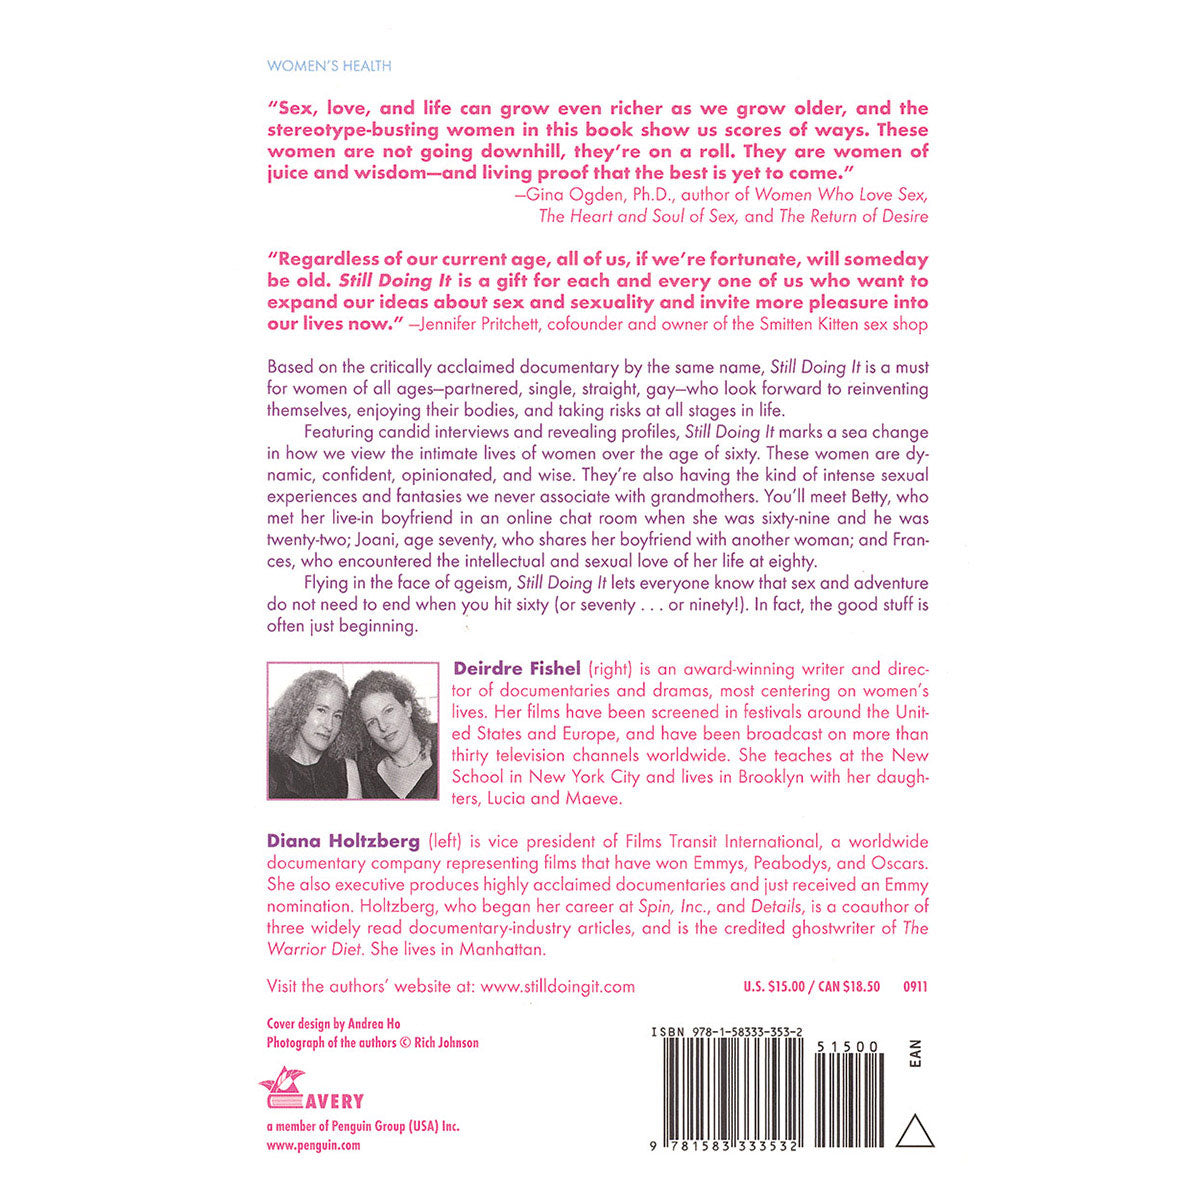 Still Doing It: The Intimate Lives of Women Over 60 - The Intimate Lifes of Women Over Sixty - Avery Books